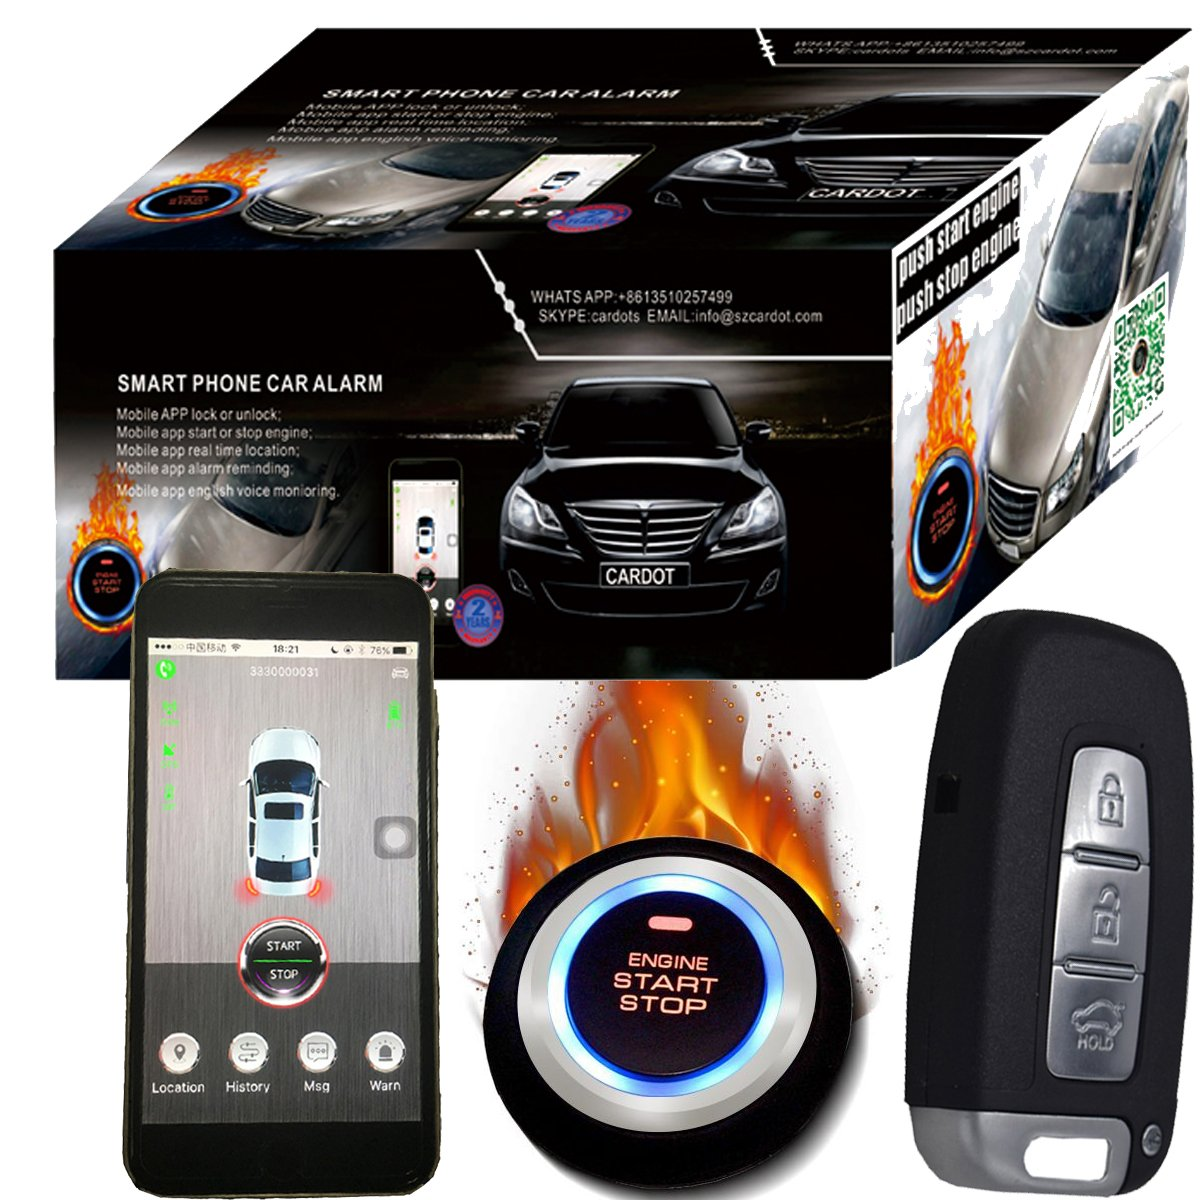 Gps Gsm Car Alarm And Google Maps Gps Car Tracking System Mobile App Remote Start Stop Engine